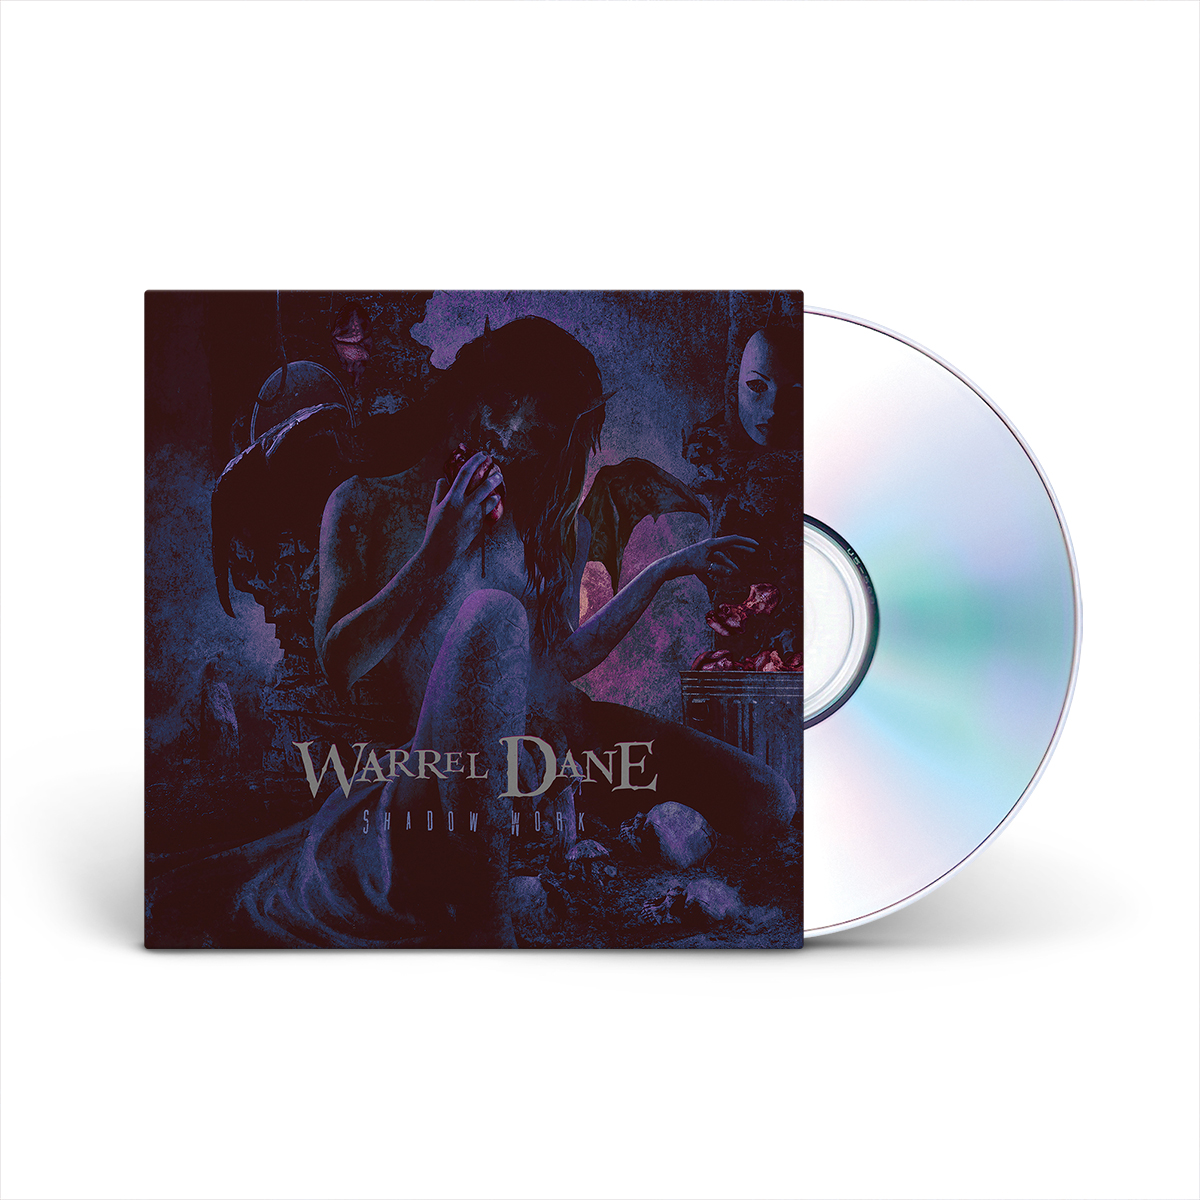 Warrel Dane - Shadow Work CD